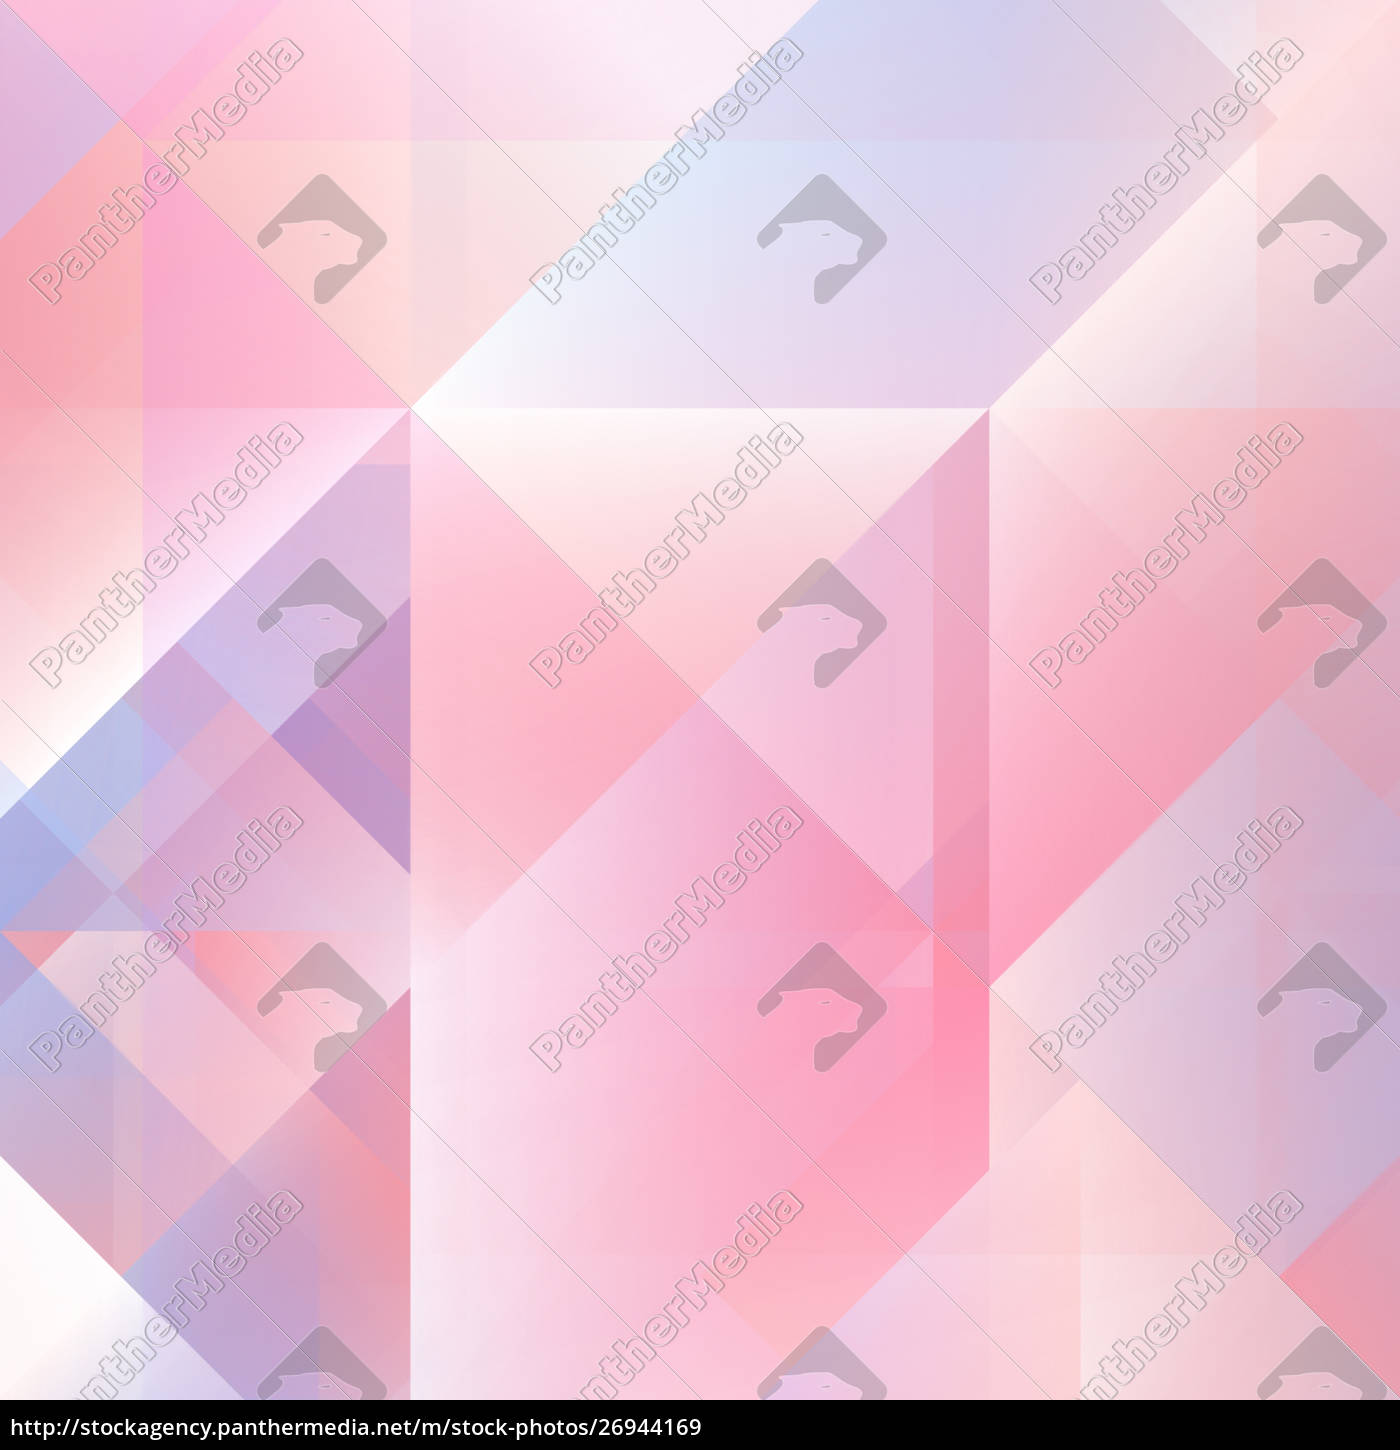 Stock Photo 26944169 Abstract Geometric Background With Soft Pastel Colors